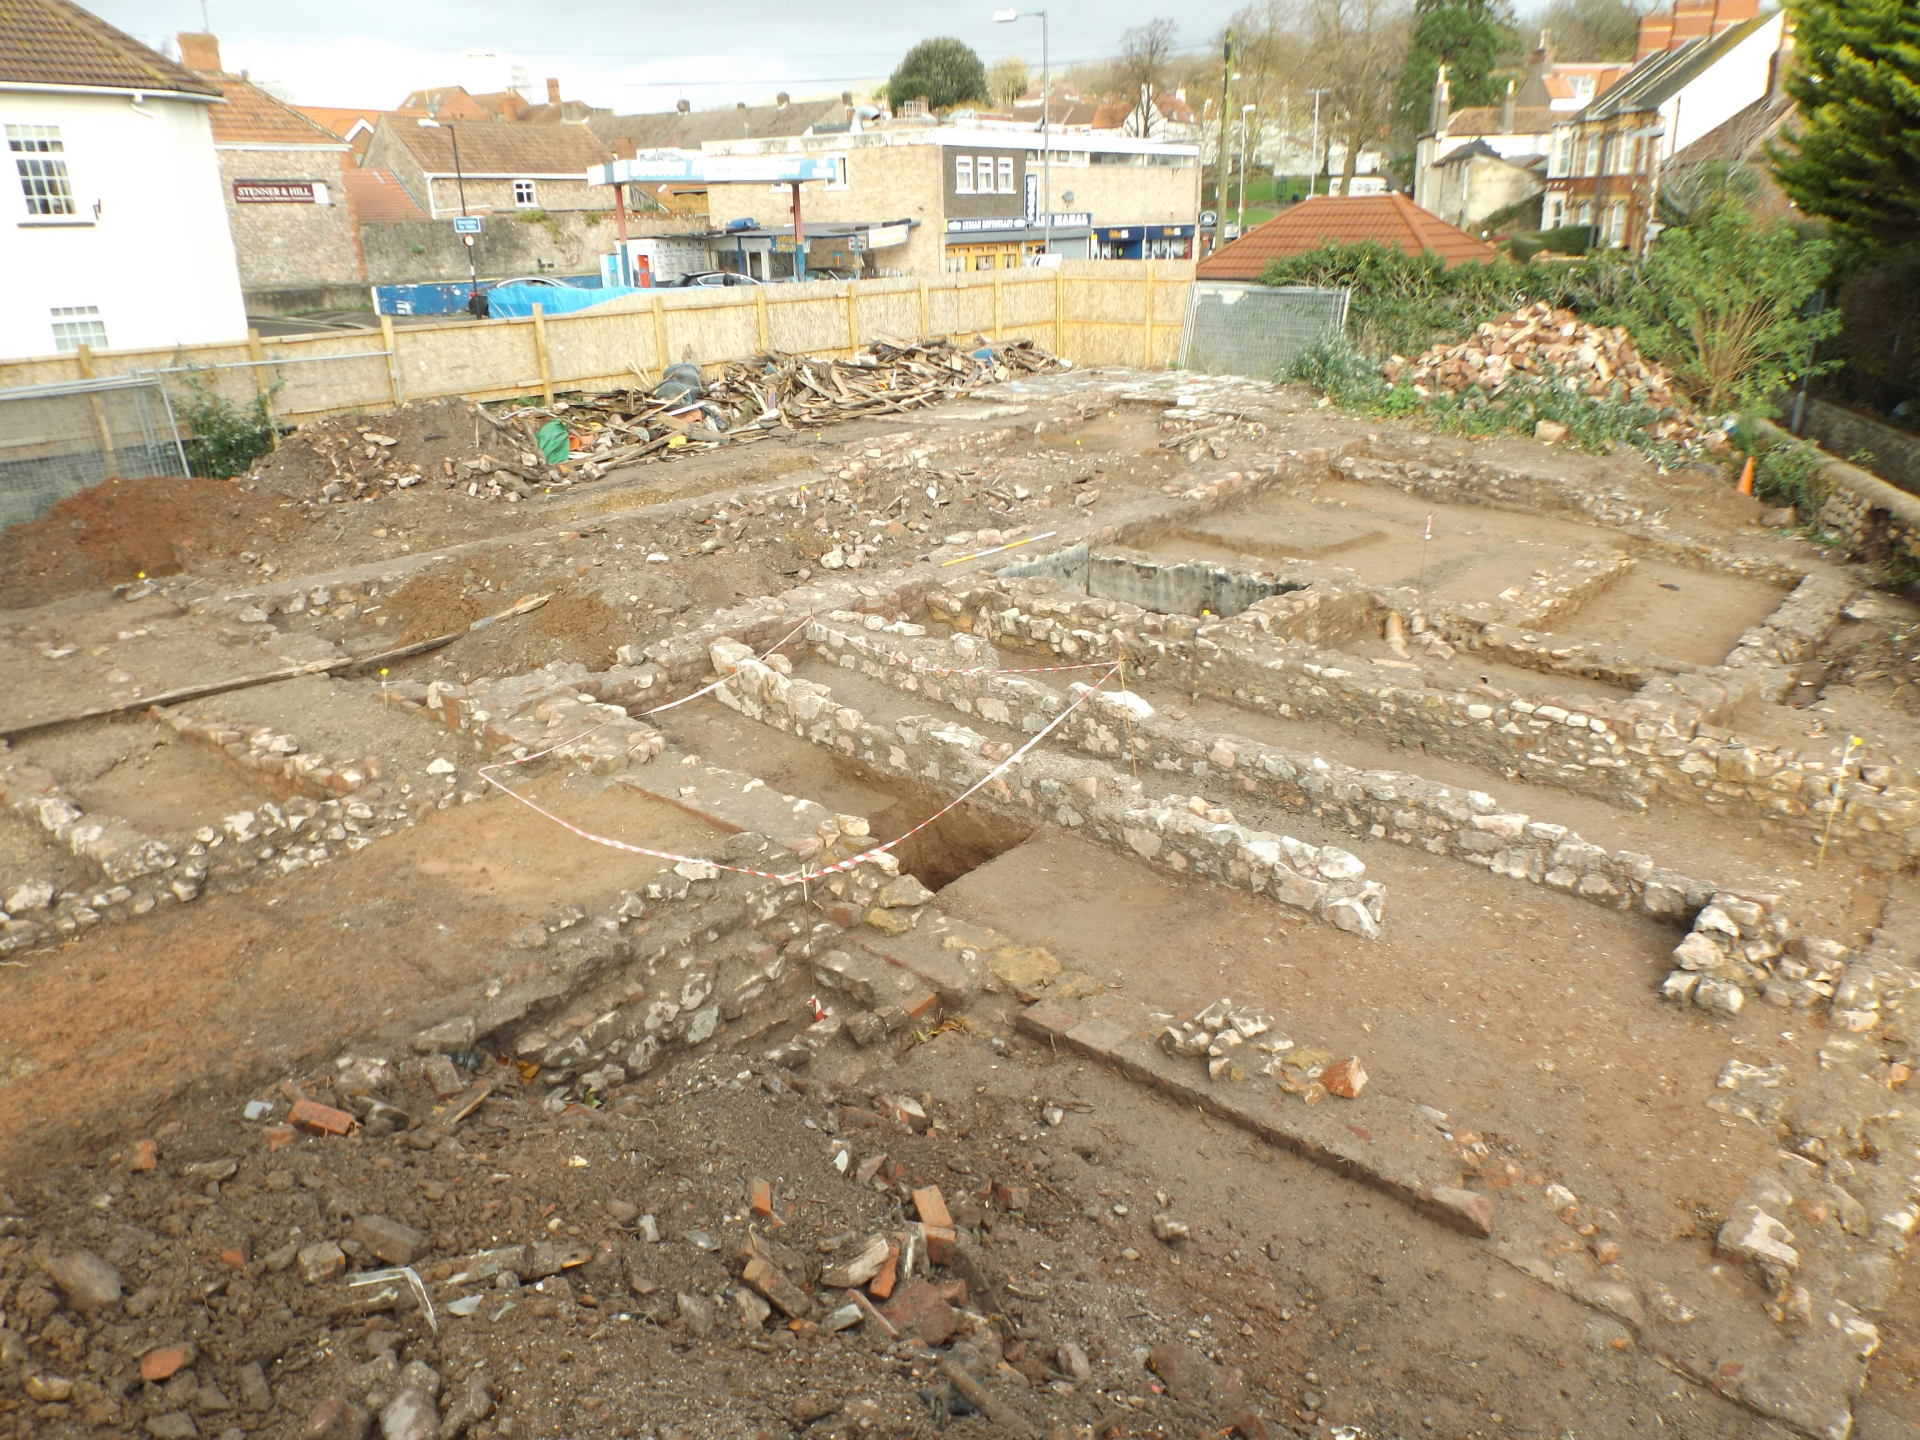 Roman Shirehampton (click to see full text)